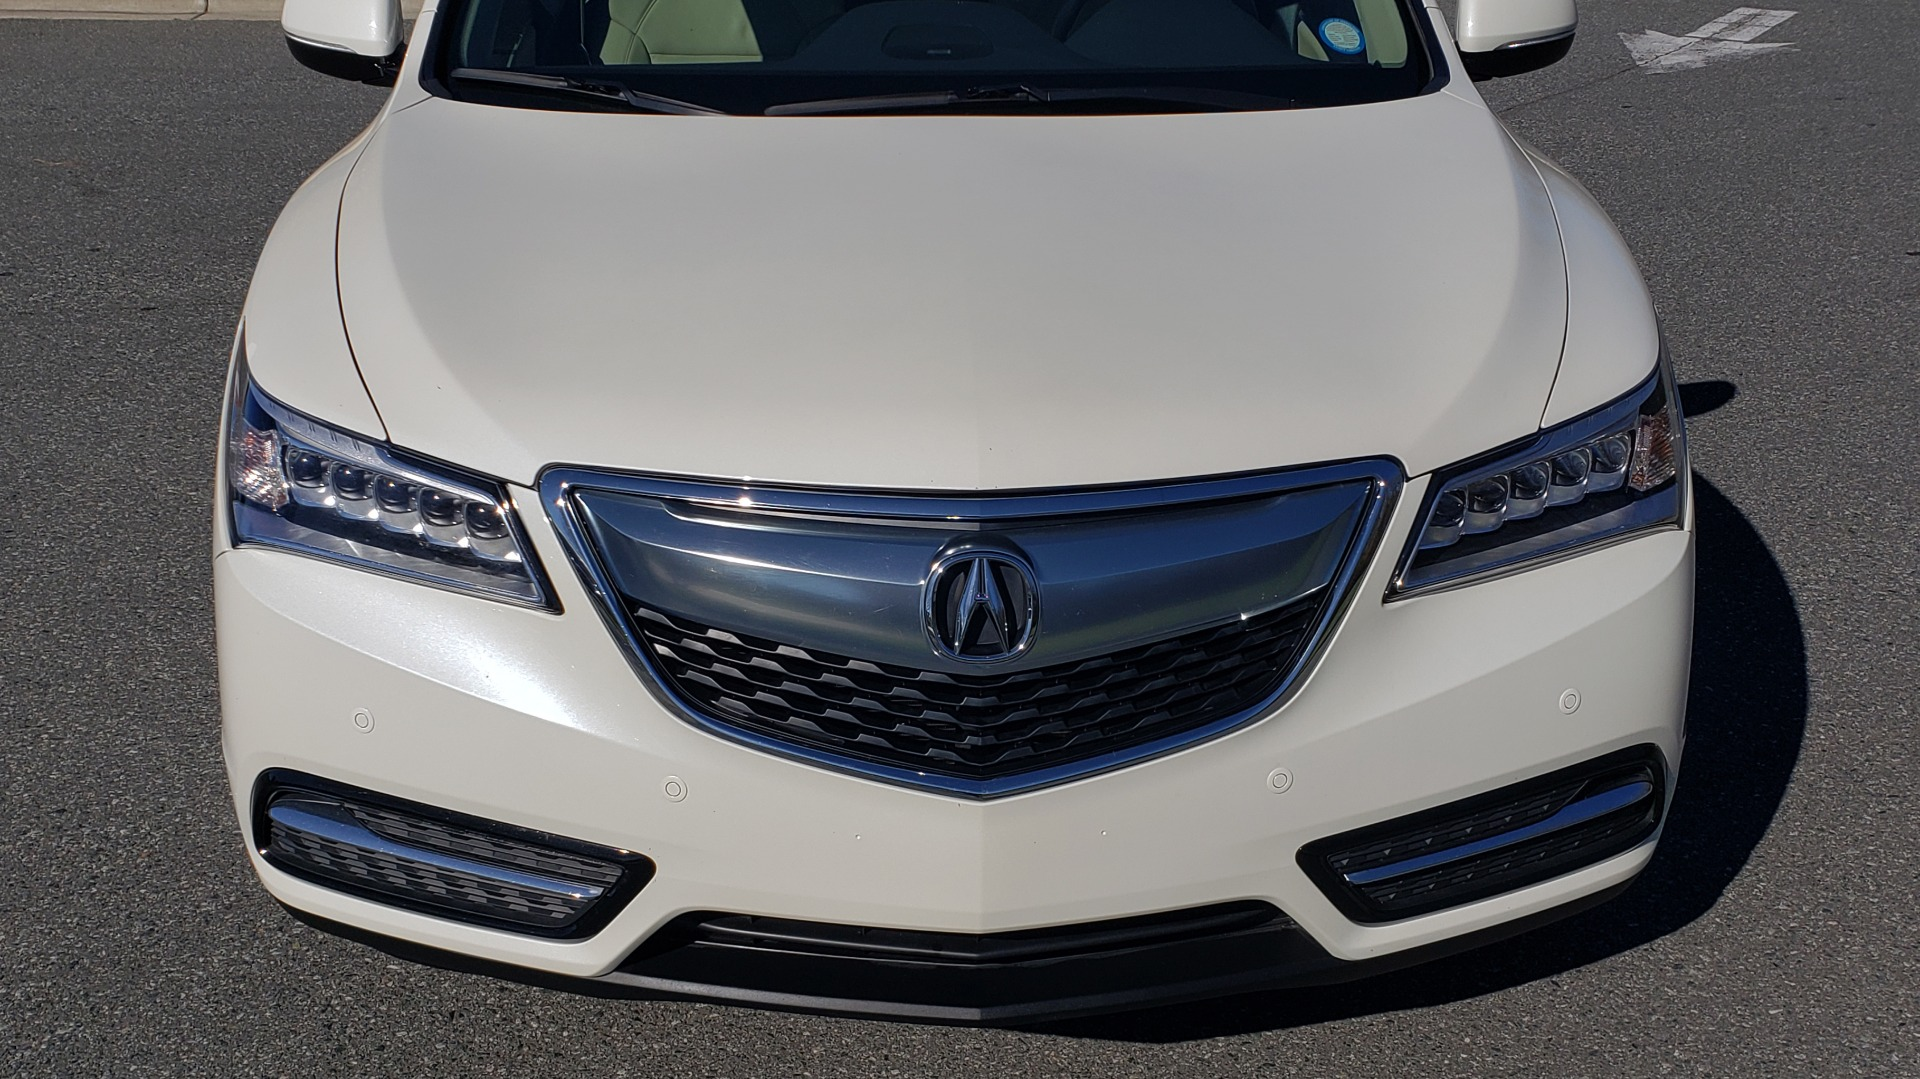 Used 2016 Acura MDX AWD W/ADVANCED PKG / NAV / SUNROOF / REARVIEW / 3-ROW for sale Sold at Formula Imports in Charlotte NC 28227 14